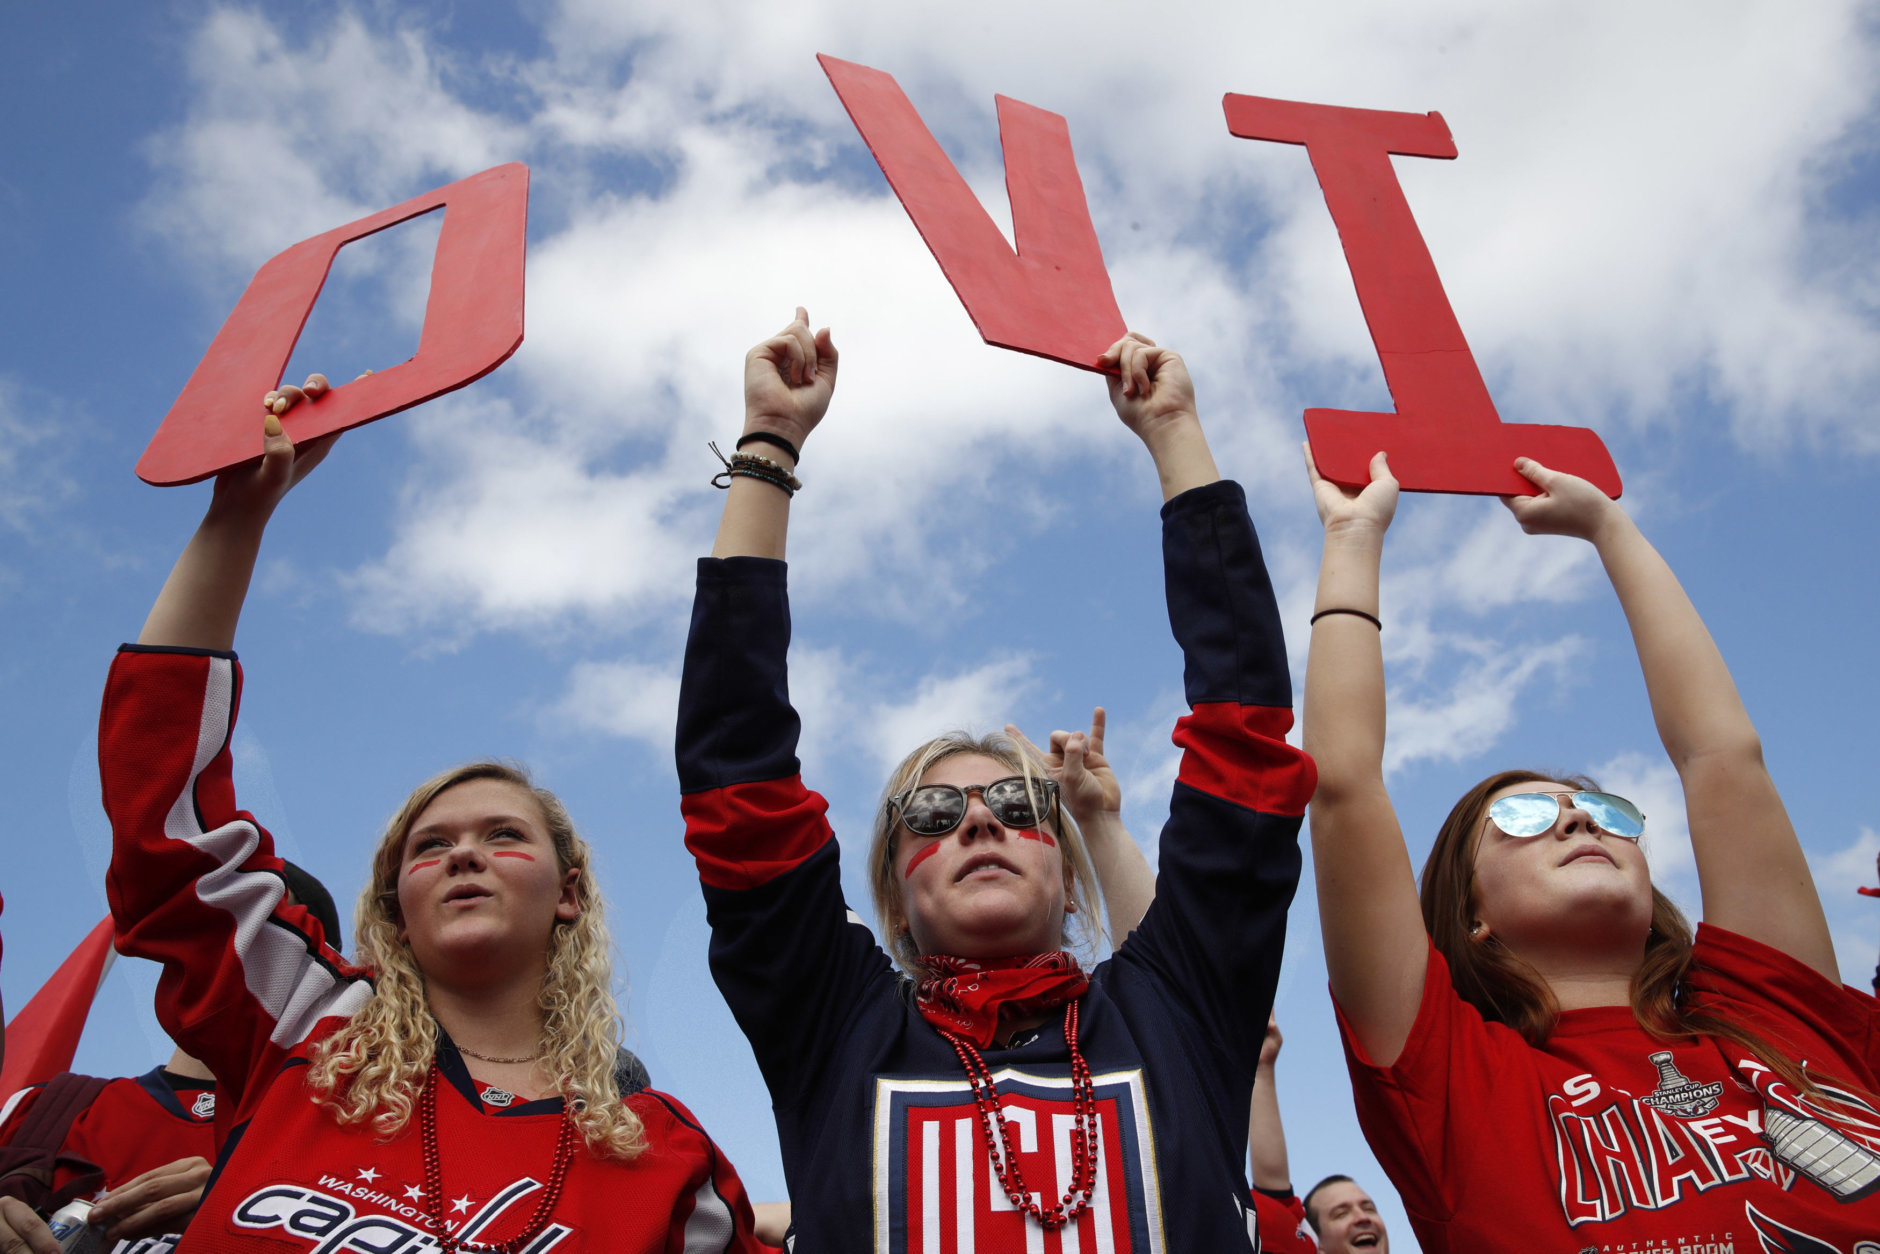 Olivia Spicer, 16, left, Emma Jacobs, 17, and Caroline Schwartz, 18, all of Gainesville, Va., hold up letters spelling the nickname of Washington Capitals' left wing Alex Ovechkin, from Russia, on the National Mall ahead of a victory parade and rally for the Washington Capitals as hockey fans celebrate their winning the Stanley Cup, Tuesday, June 12, 2018, in Washington. (AP Photo/Jacquelyn Martin)